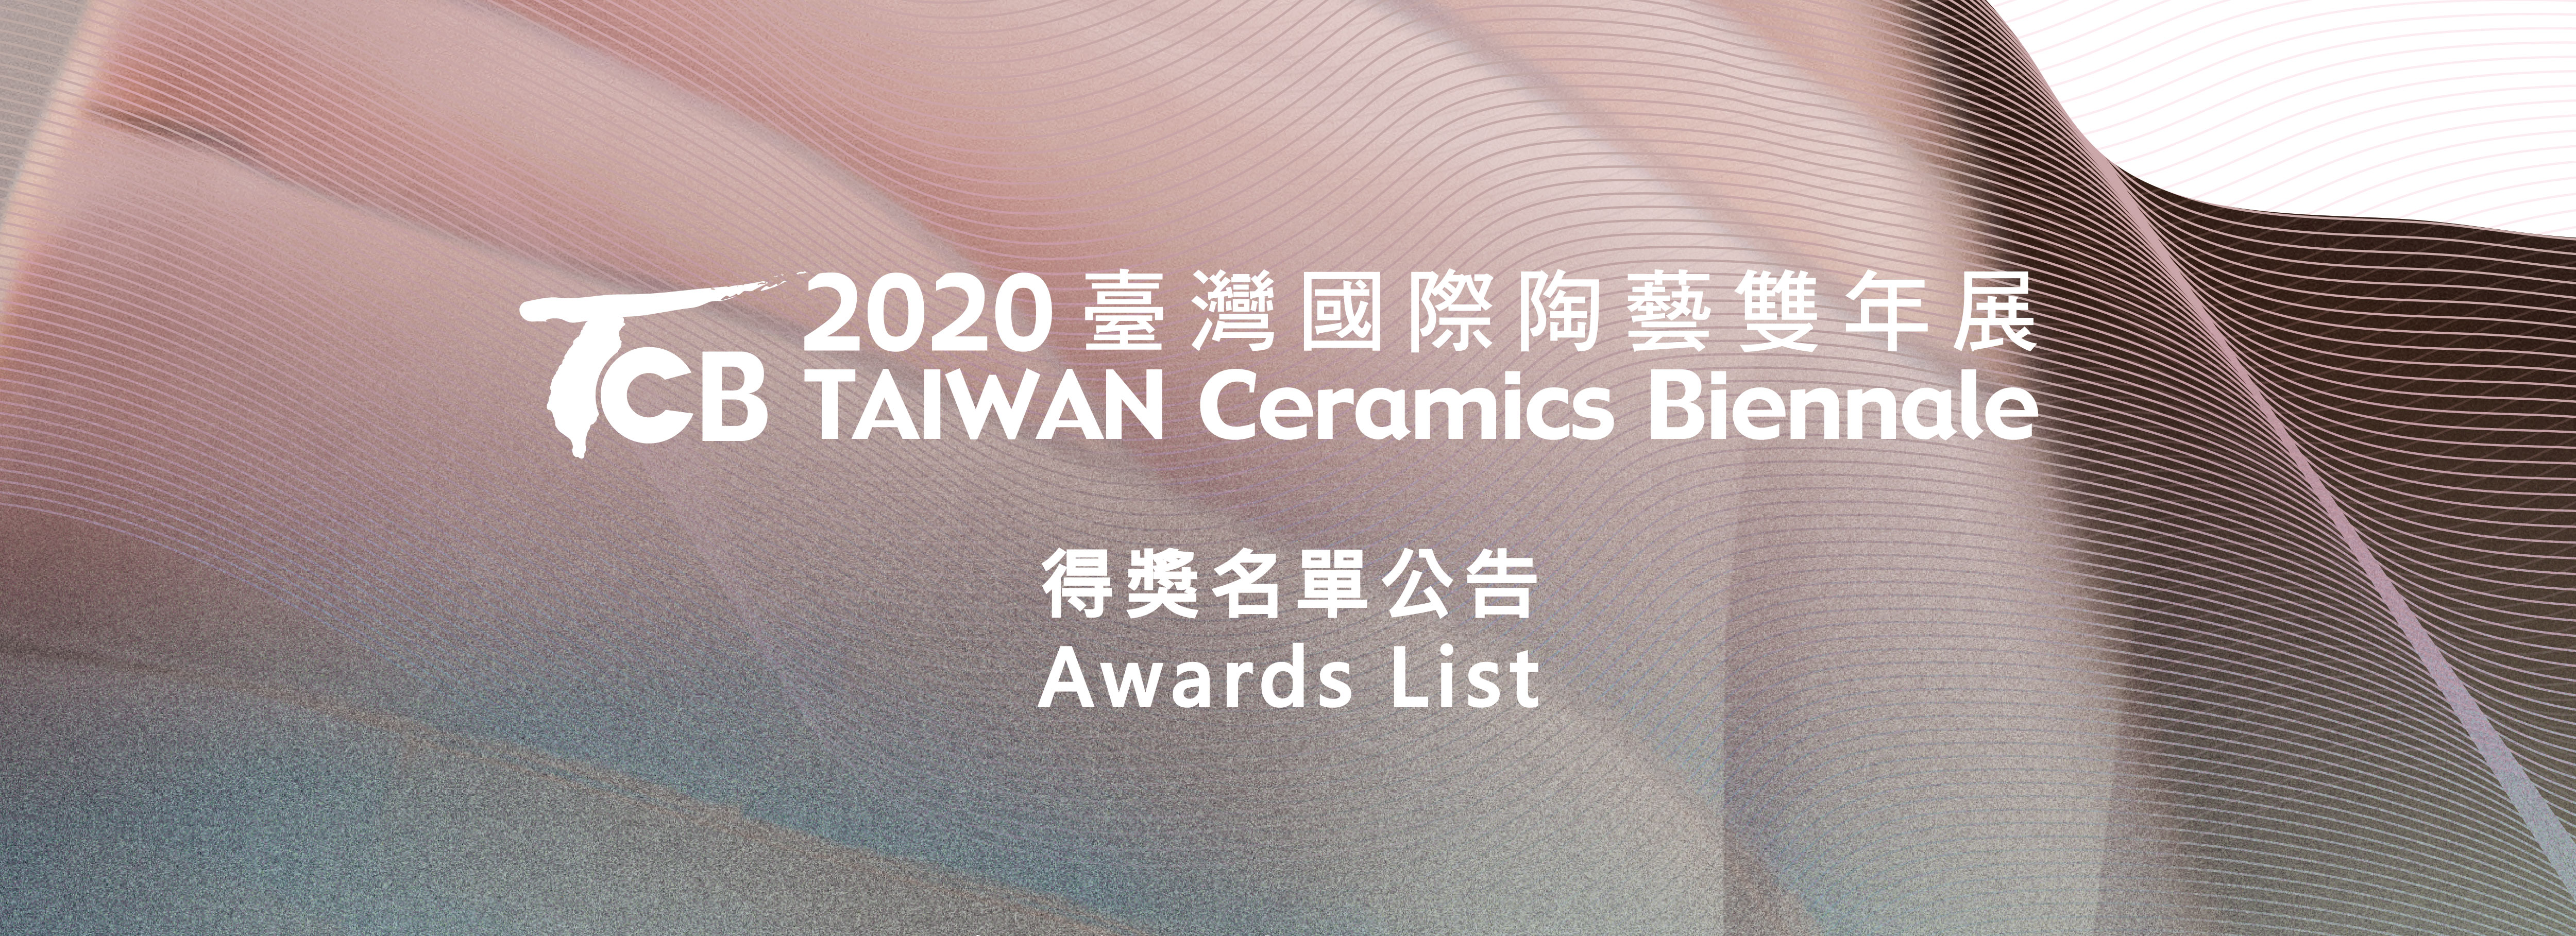 2020 Taiwan Ceramics Biennale-Awards List